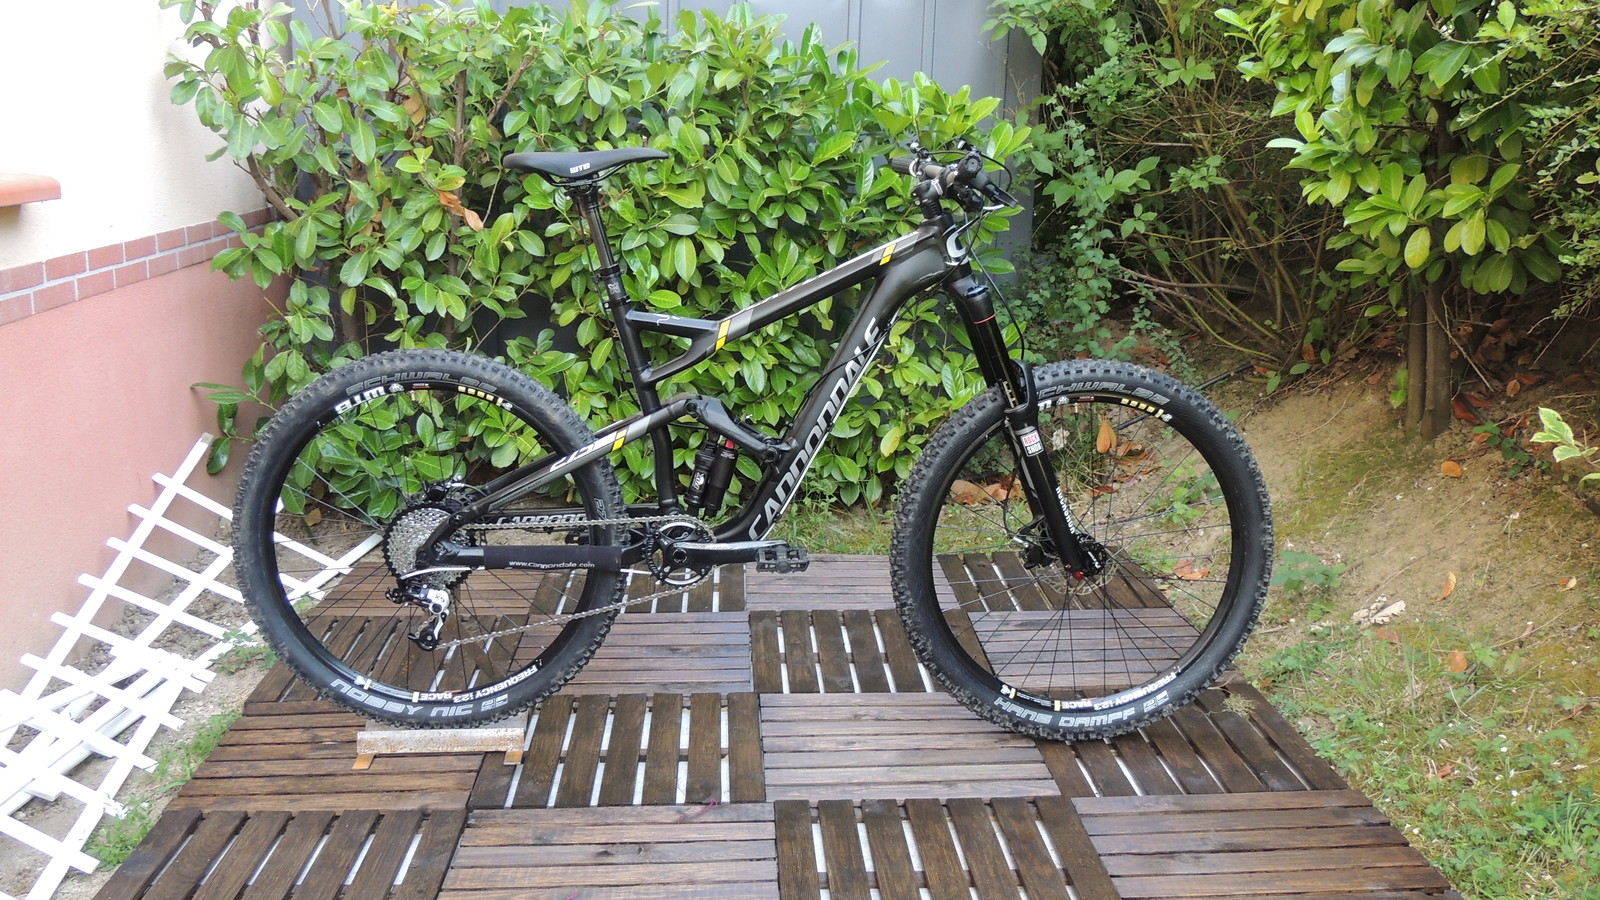 how to make the best of a small bedroom cannondale jeckyll 27 5 3 2015 chou177 s bike check 21332